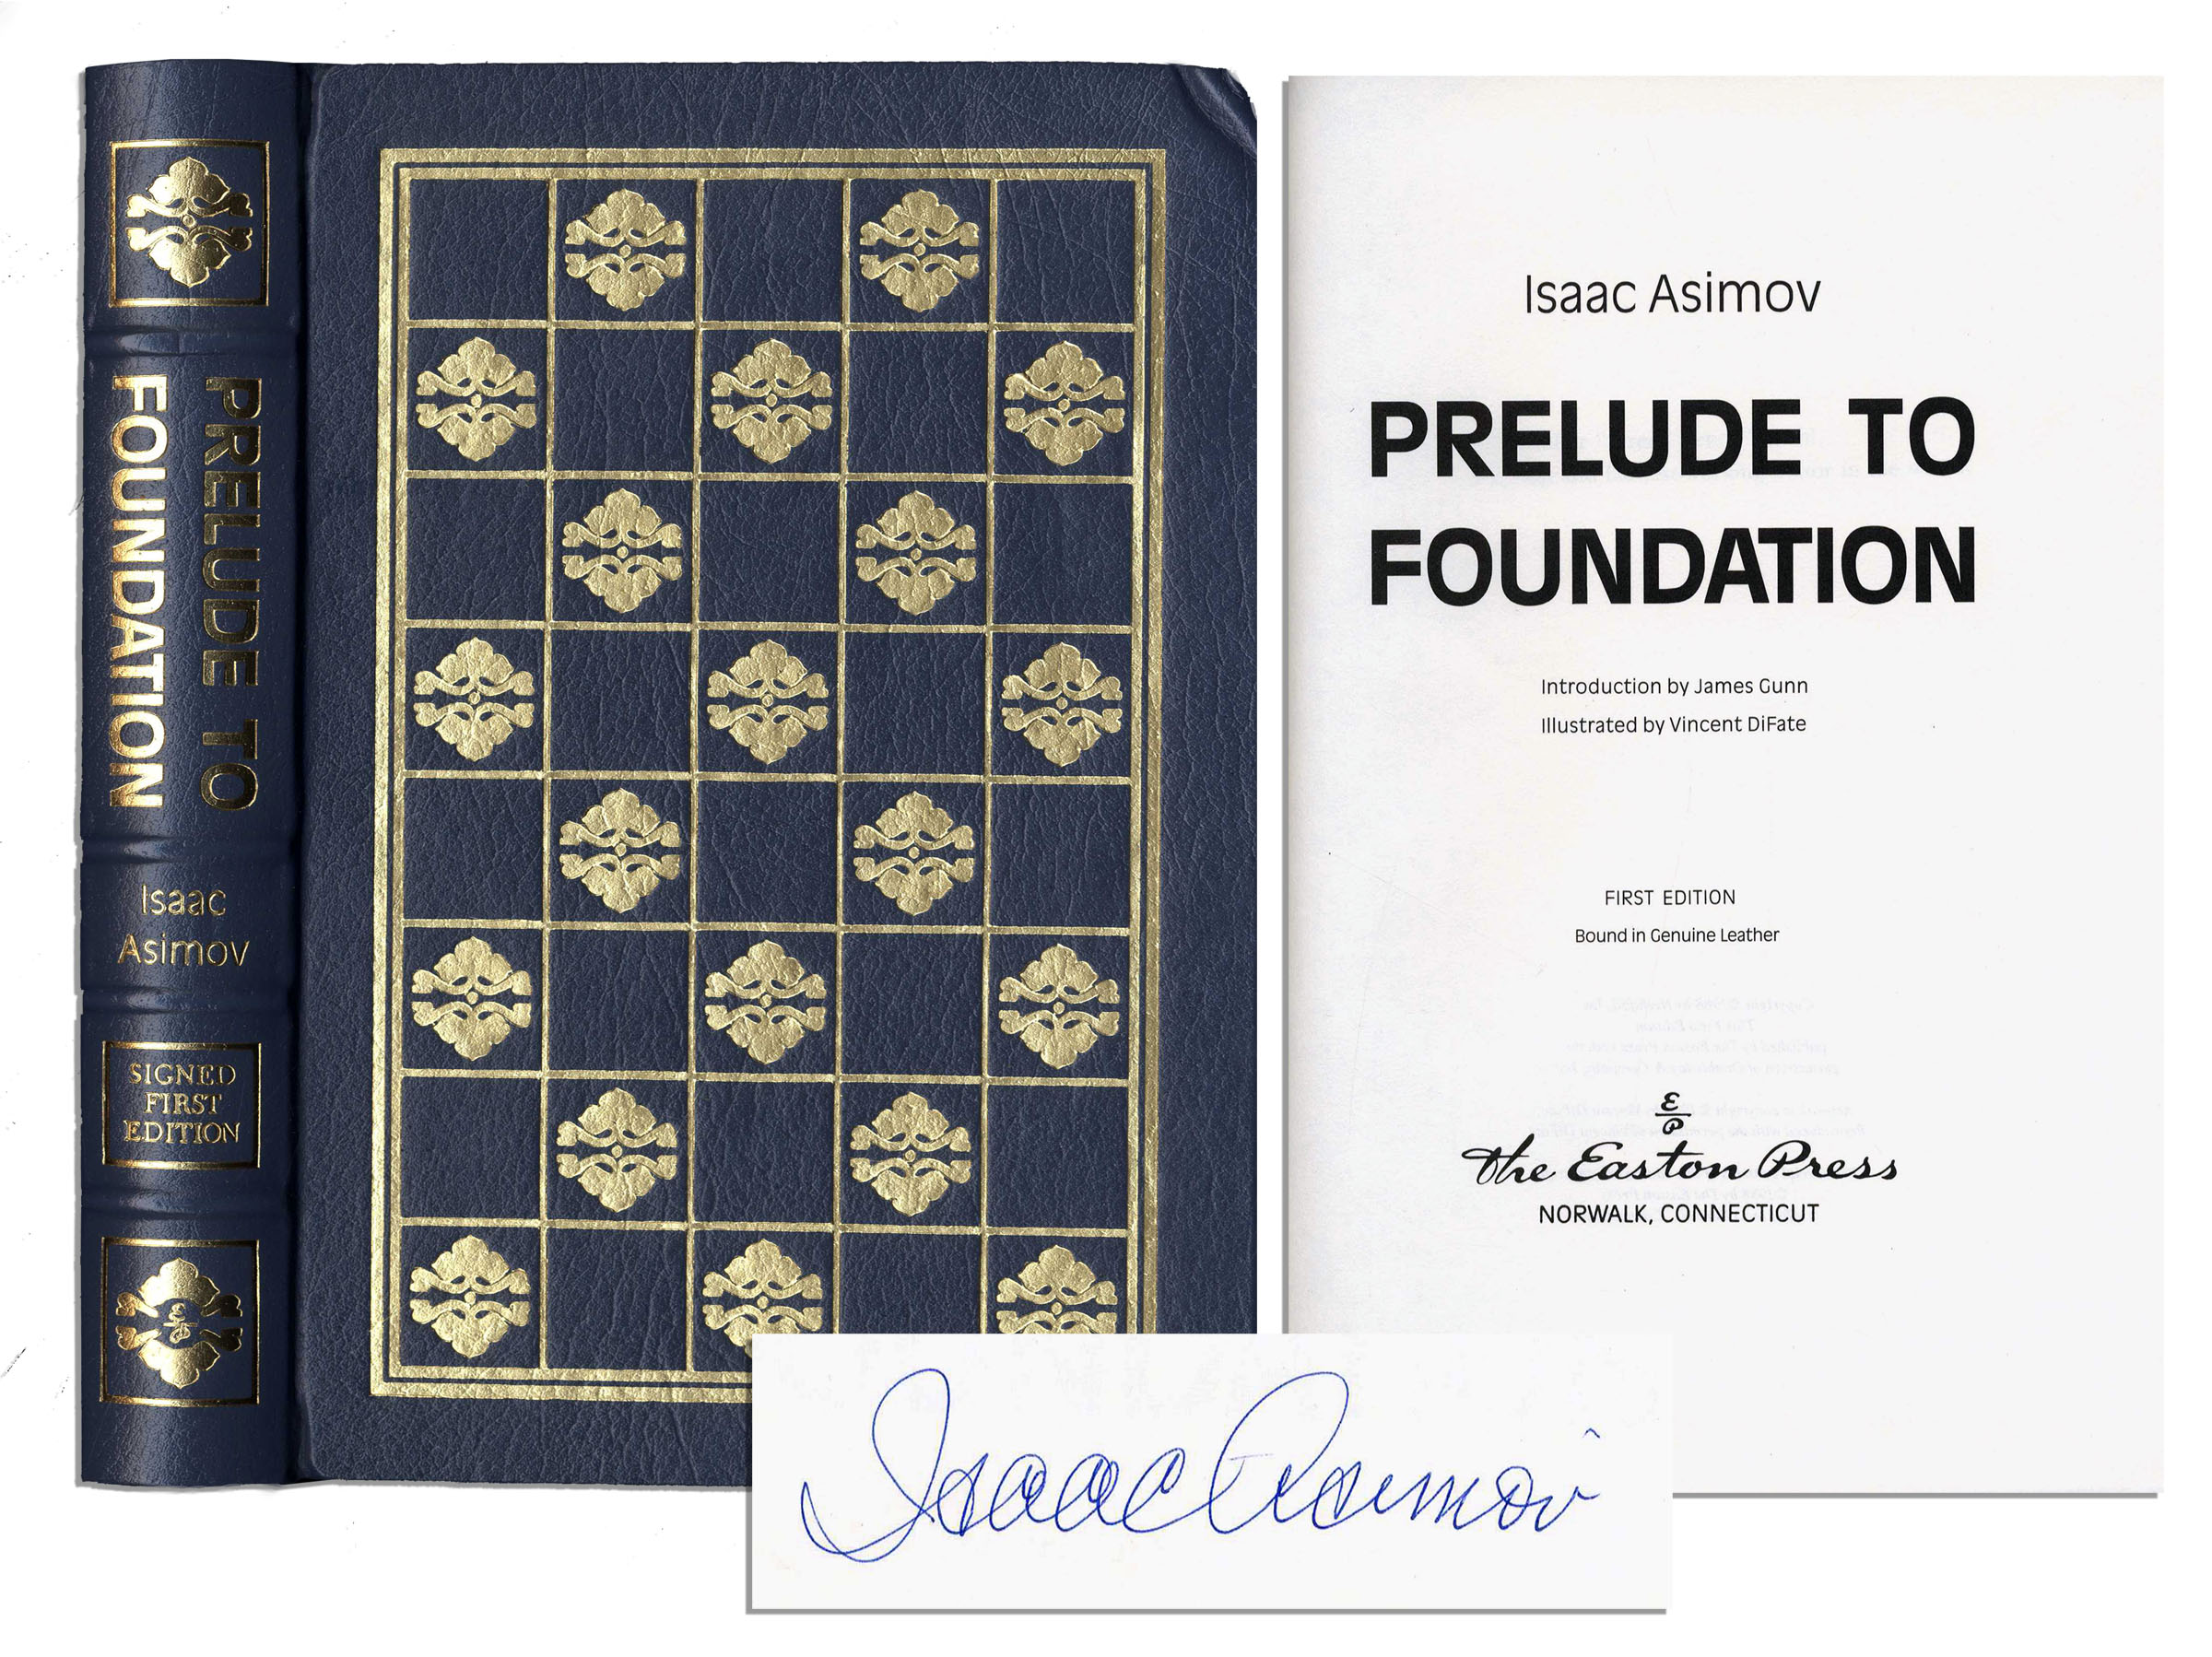 prelude to foundation isaac asimov pdf